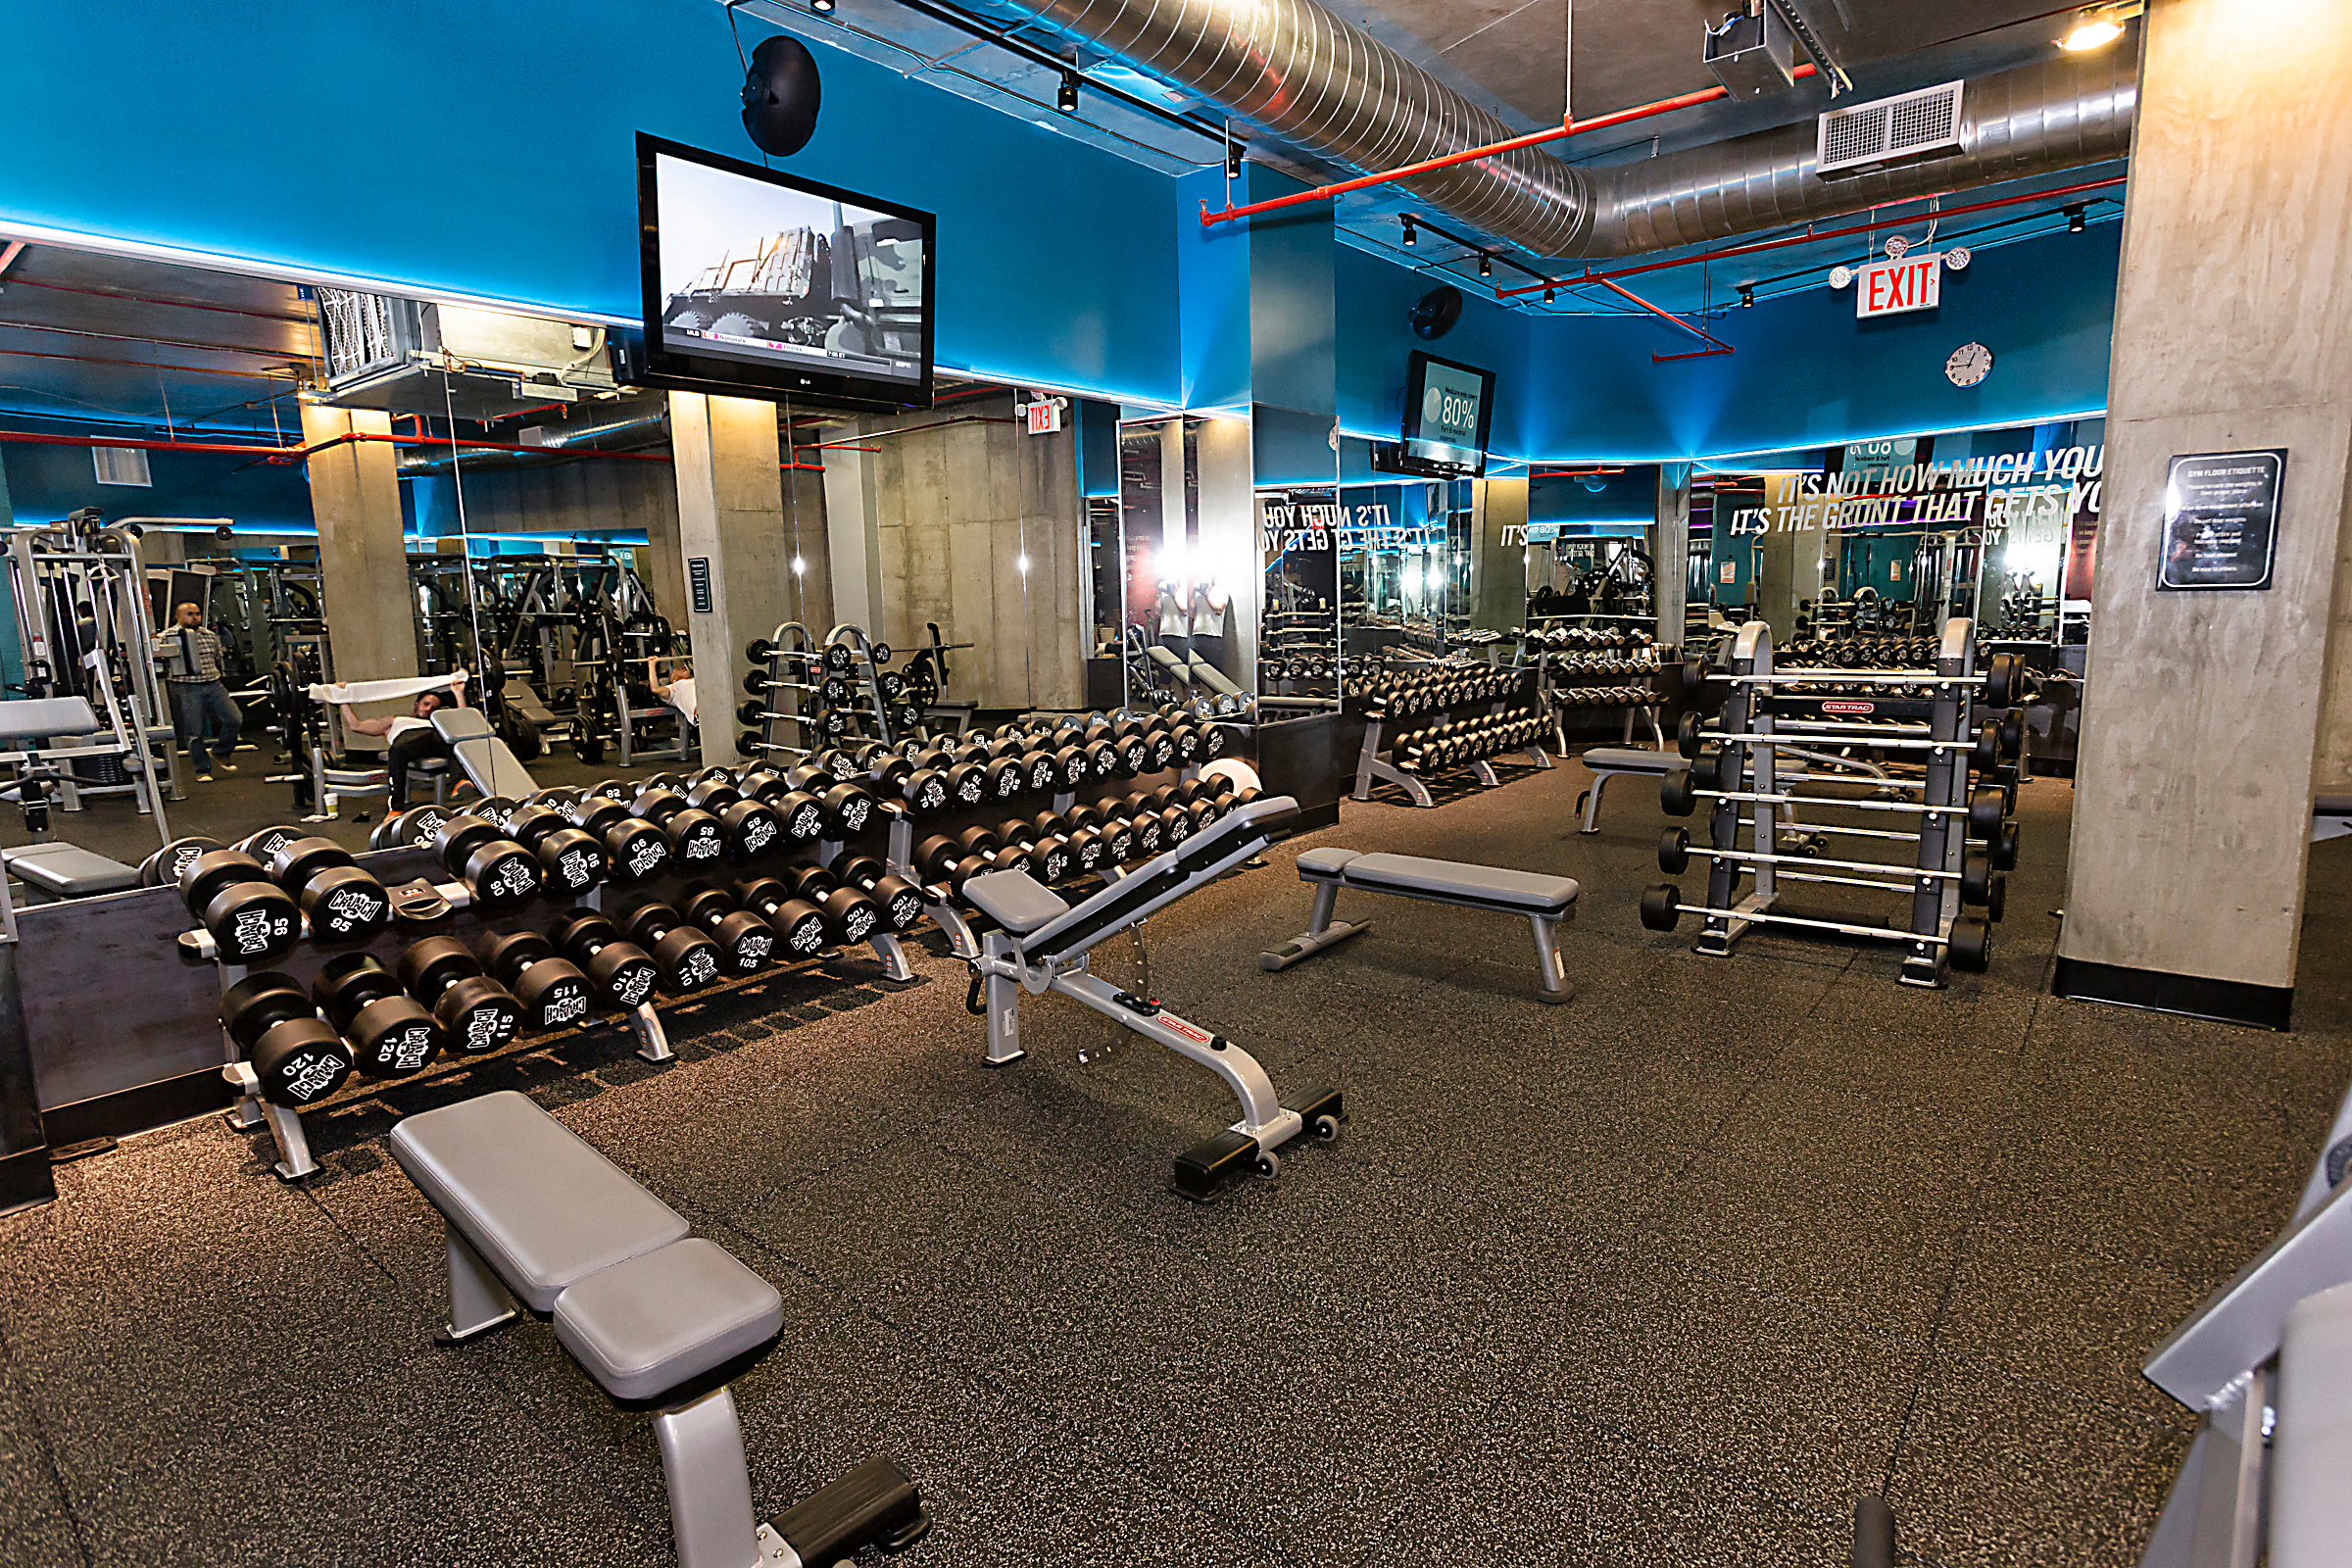 LA Fitness is a health and fitness chain operating in the United States and Canada, with more than locations across those two countries. Since the center was established in it has grown in popularity because of its state of the art facilities and affordable membership fees.